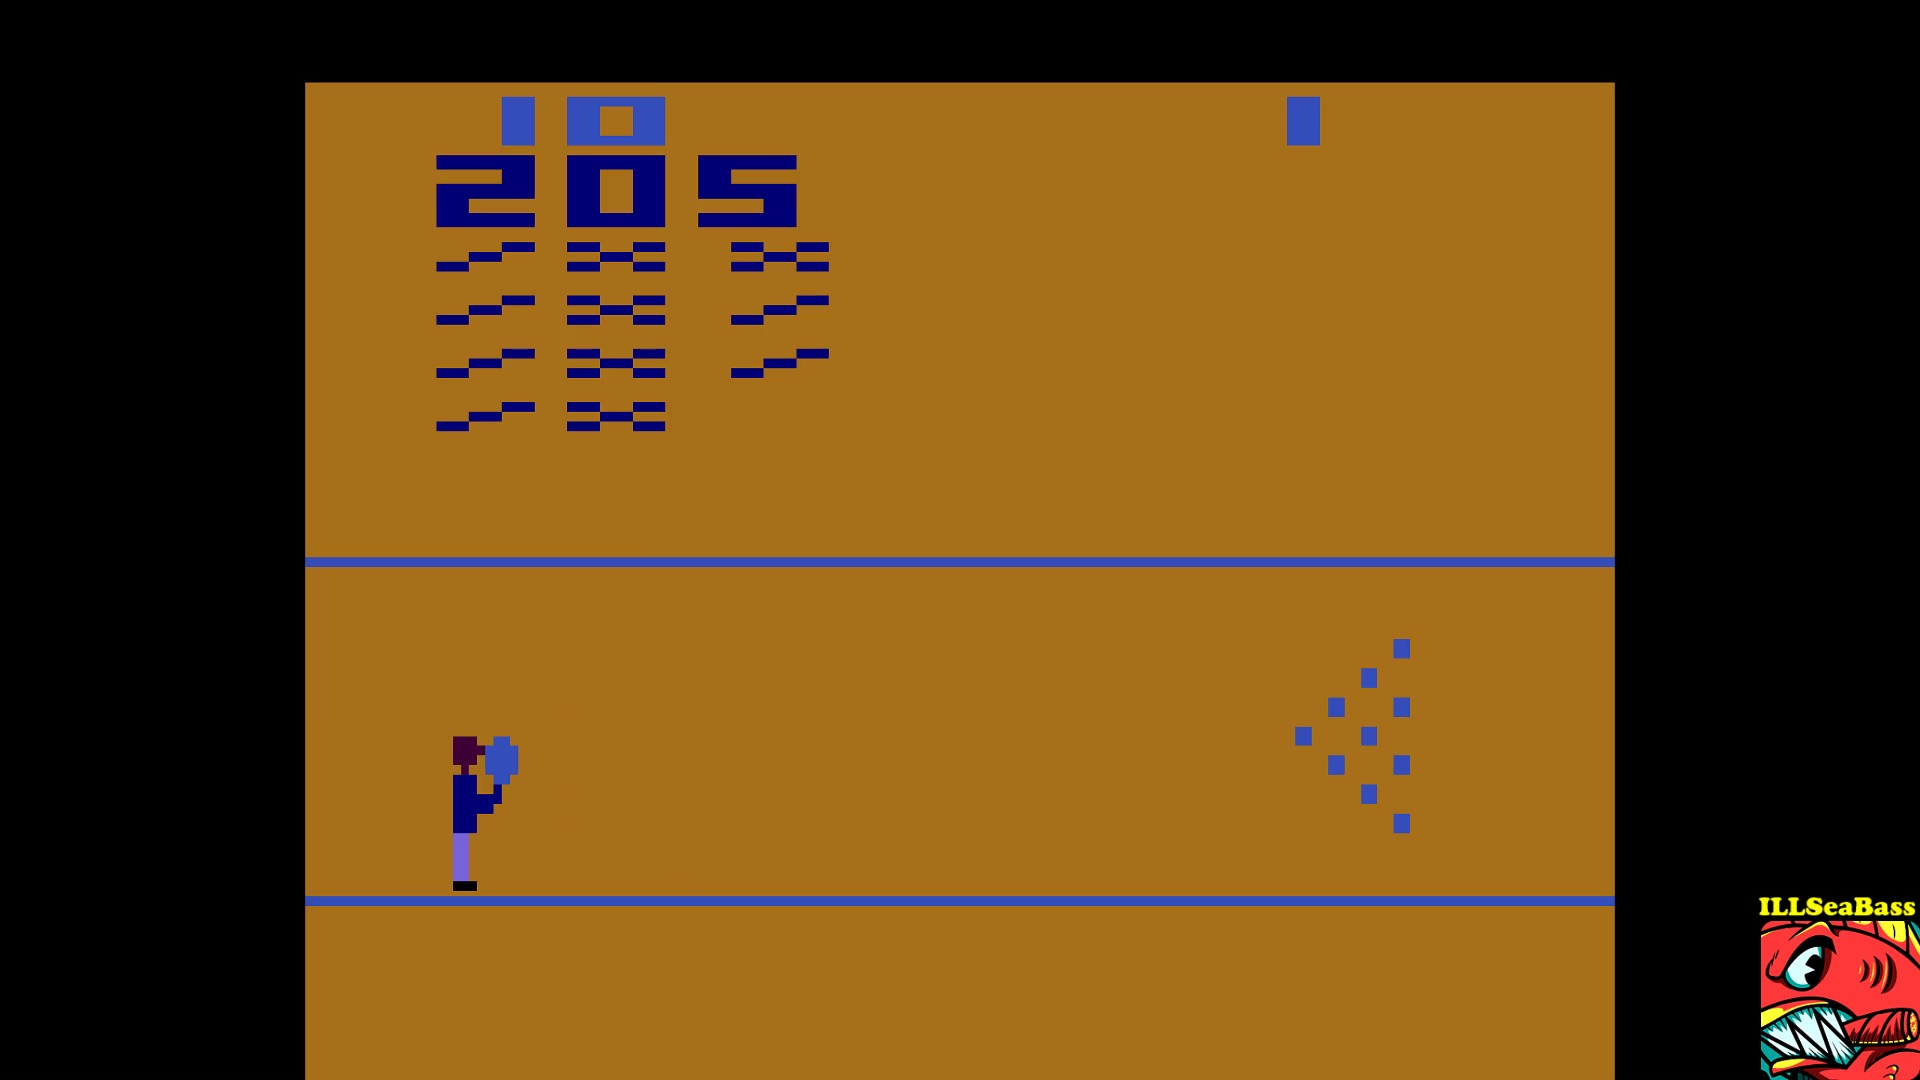 ILLSeaBass: Bowling: Game 3 (Atari 2600 Emulated Novice/B Mode) 205 points on 2017-10-25 19:34:56